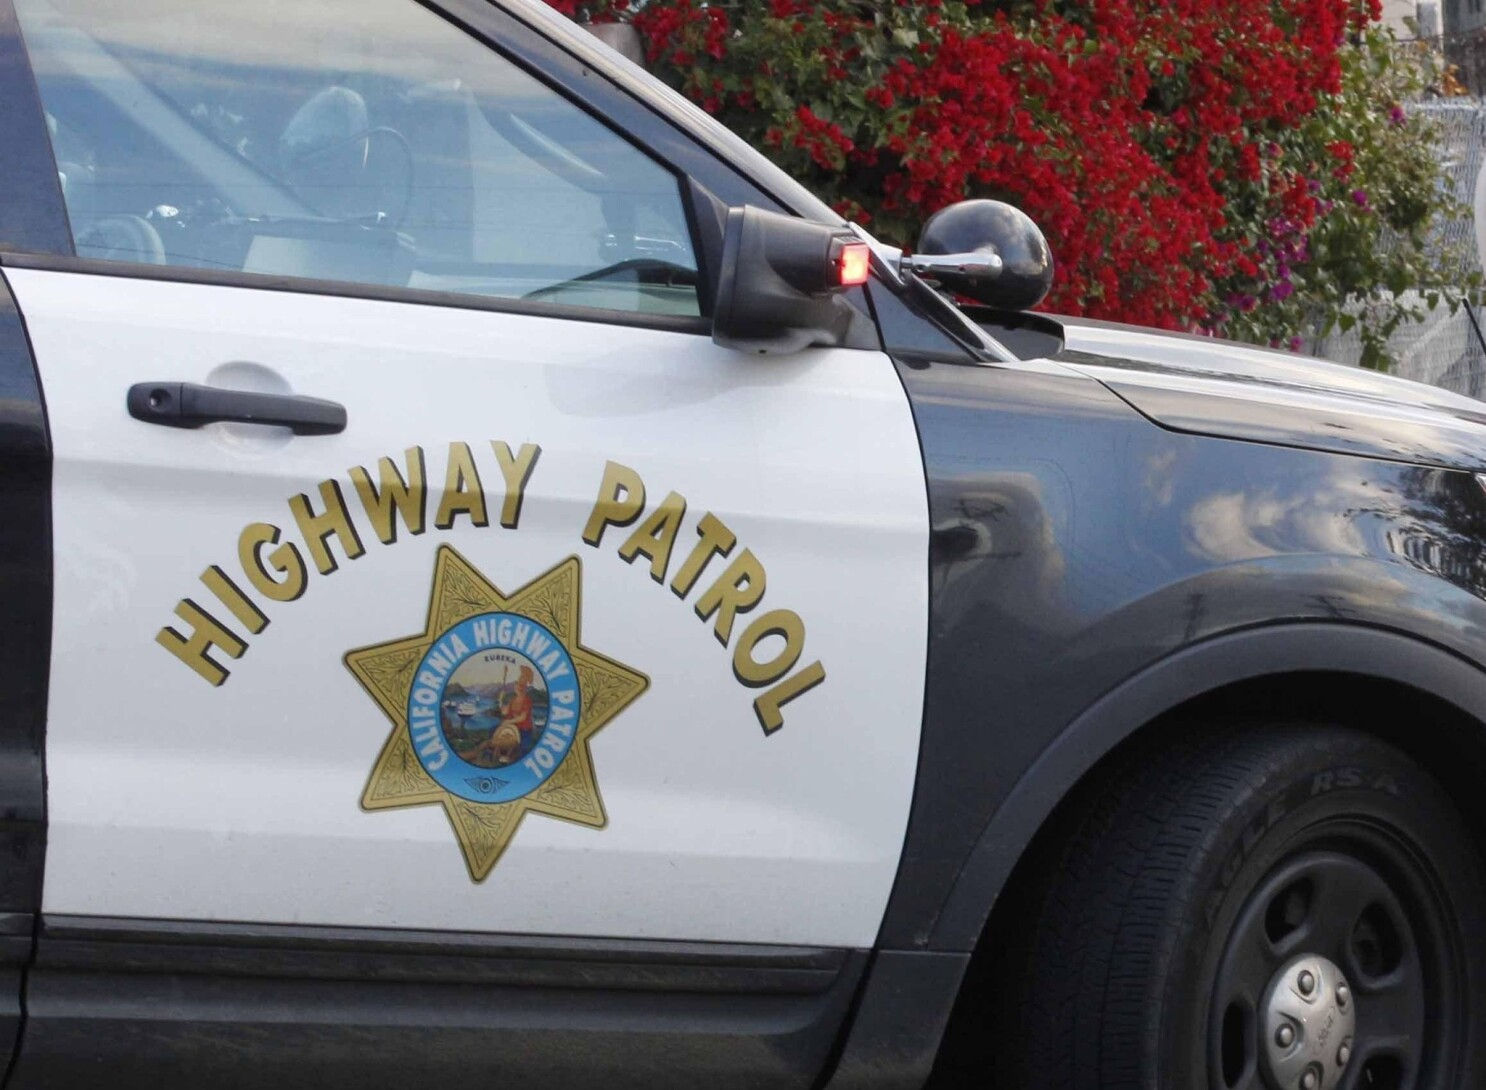 Driver dies in head-on crash on SR-94 in Jamul - The San Diego Union